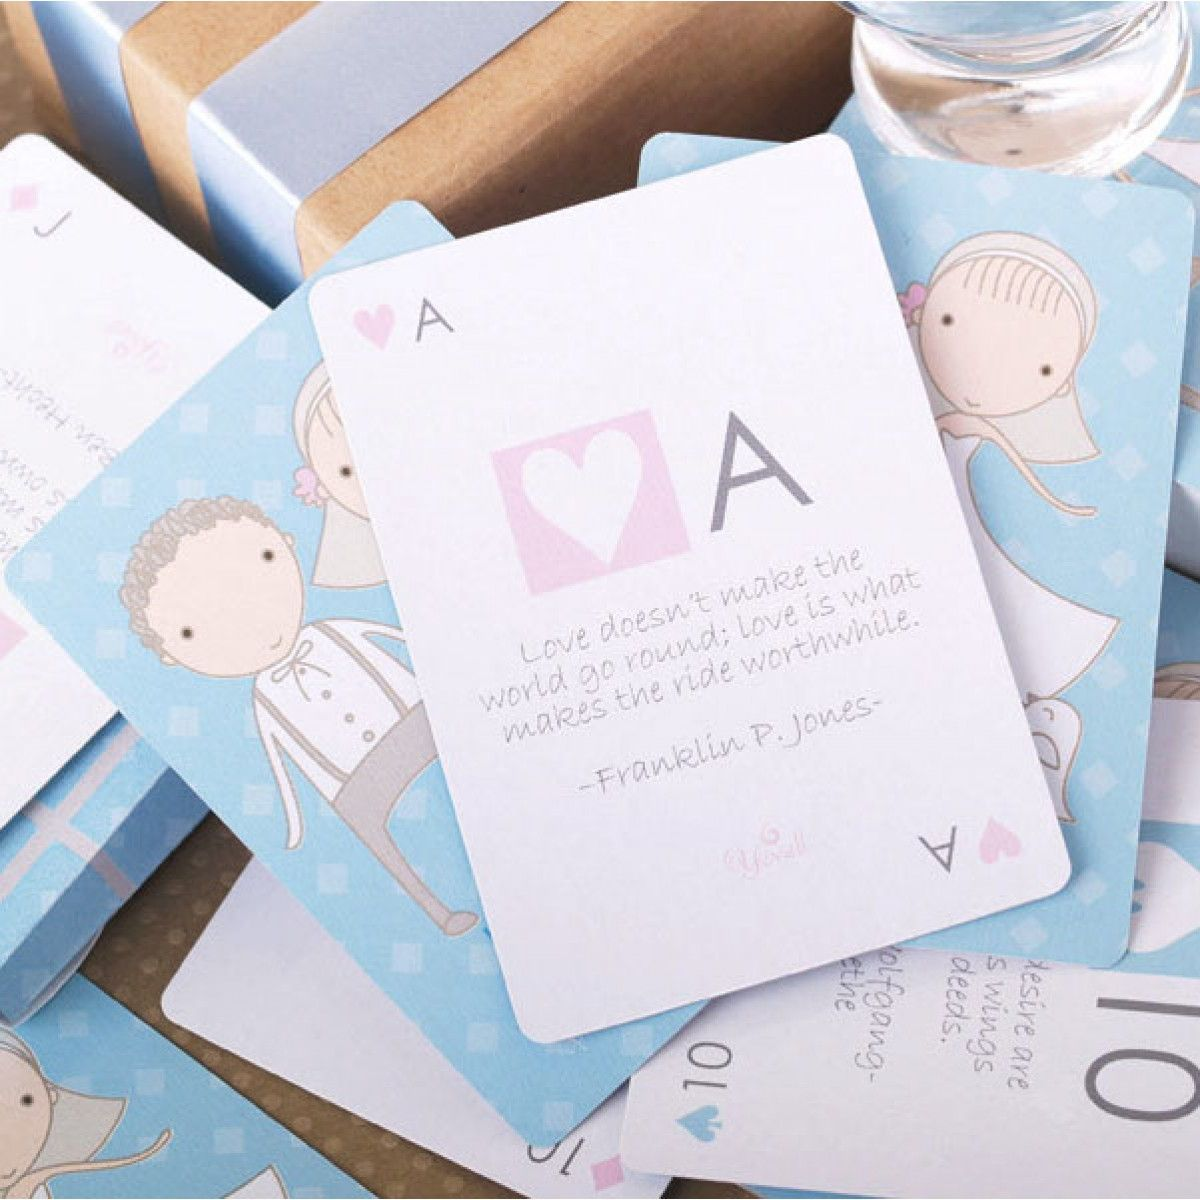 A Love Story Playing Cards Favors | Wedding door gifts | Pinterest ...